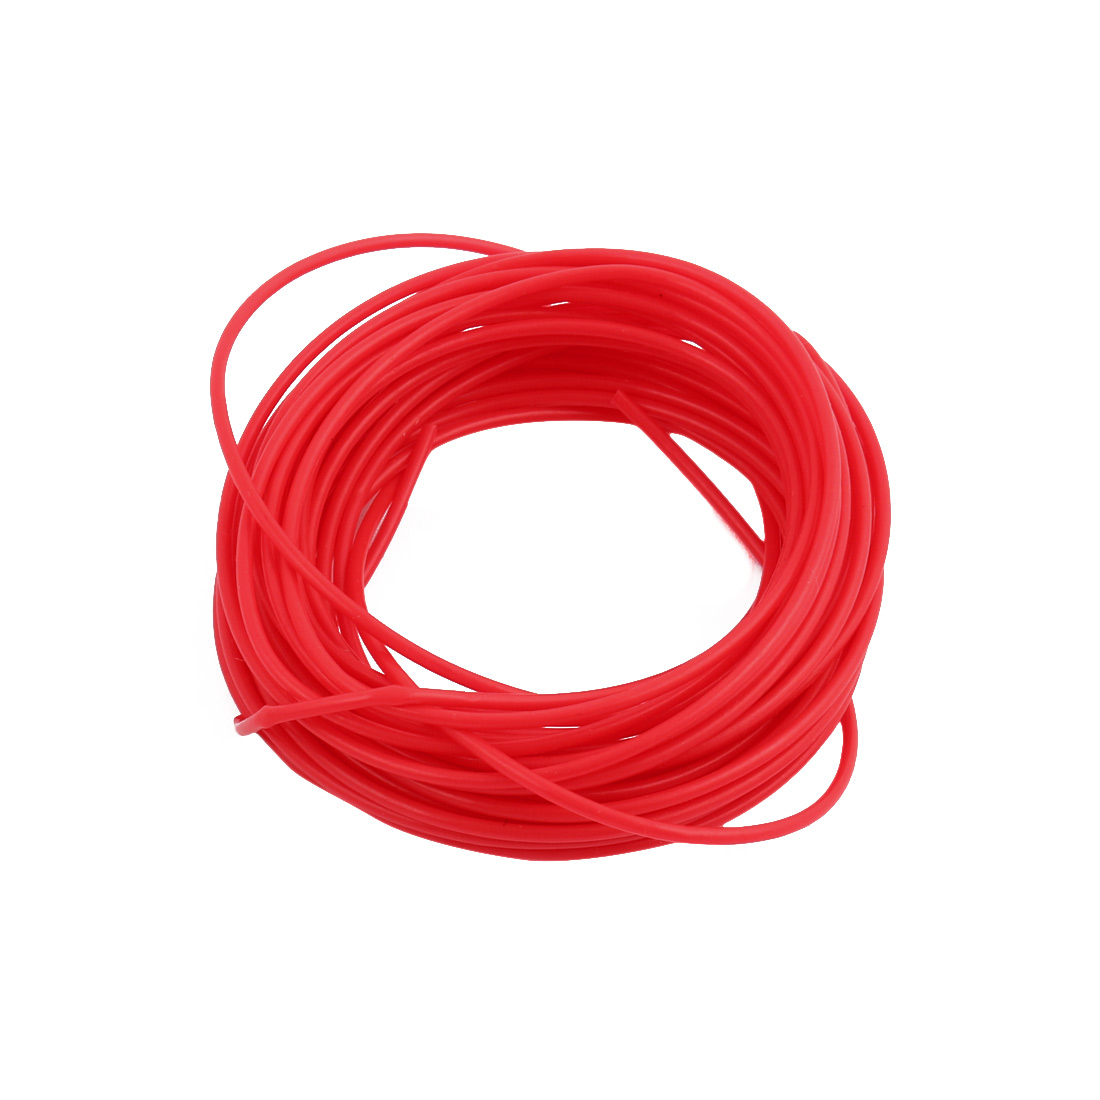 1.19mmx1.49mm PTFE Resistant High Temperature Red Tubing 5 Meters 16.4Ft